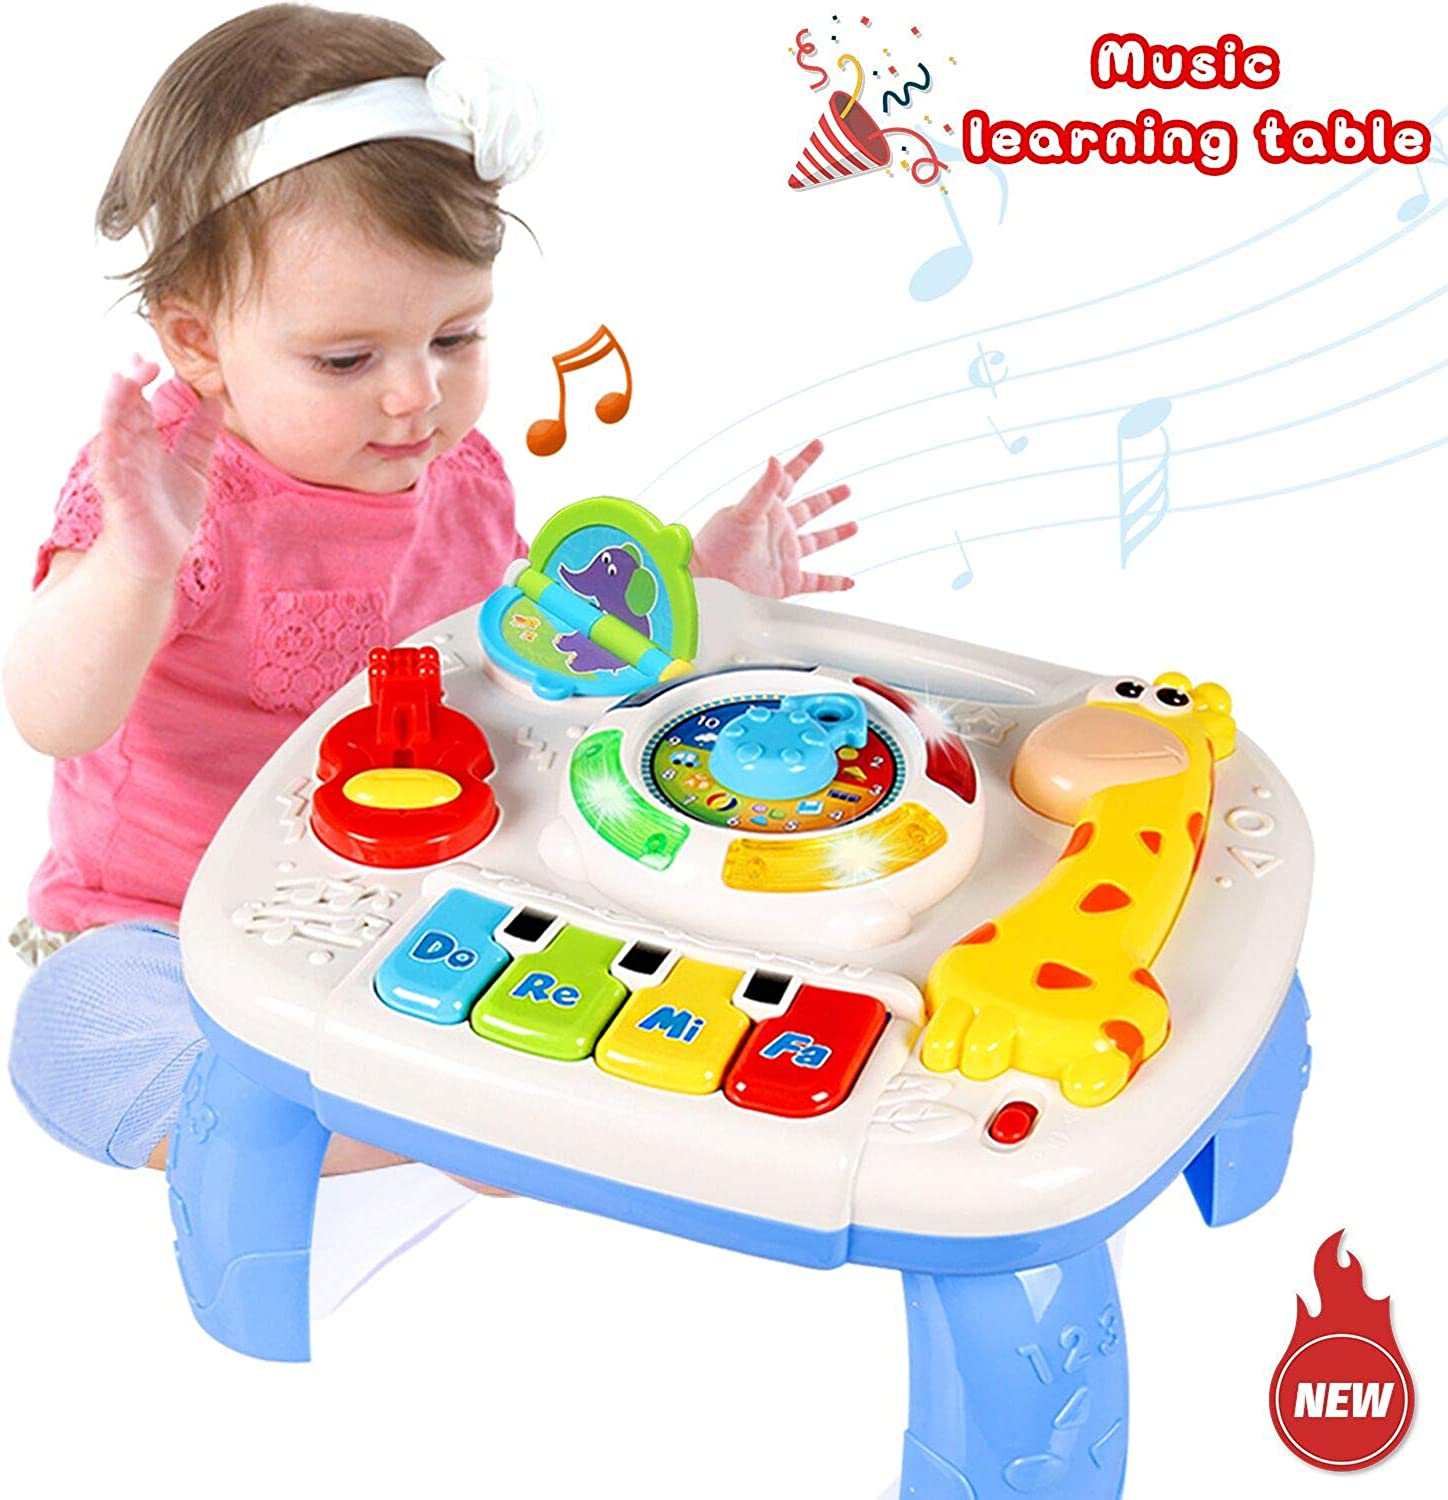 HOMOFY Baby Toys Musical Learning Table 6 Months up Early Education Activity Center Multiple Modes Game Kids Toddler Boys and Girls 123 Years Old New Gifts